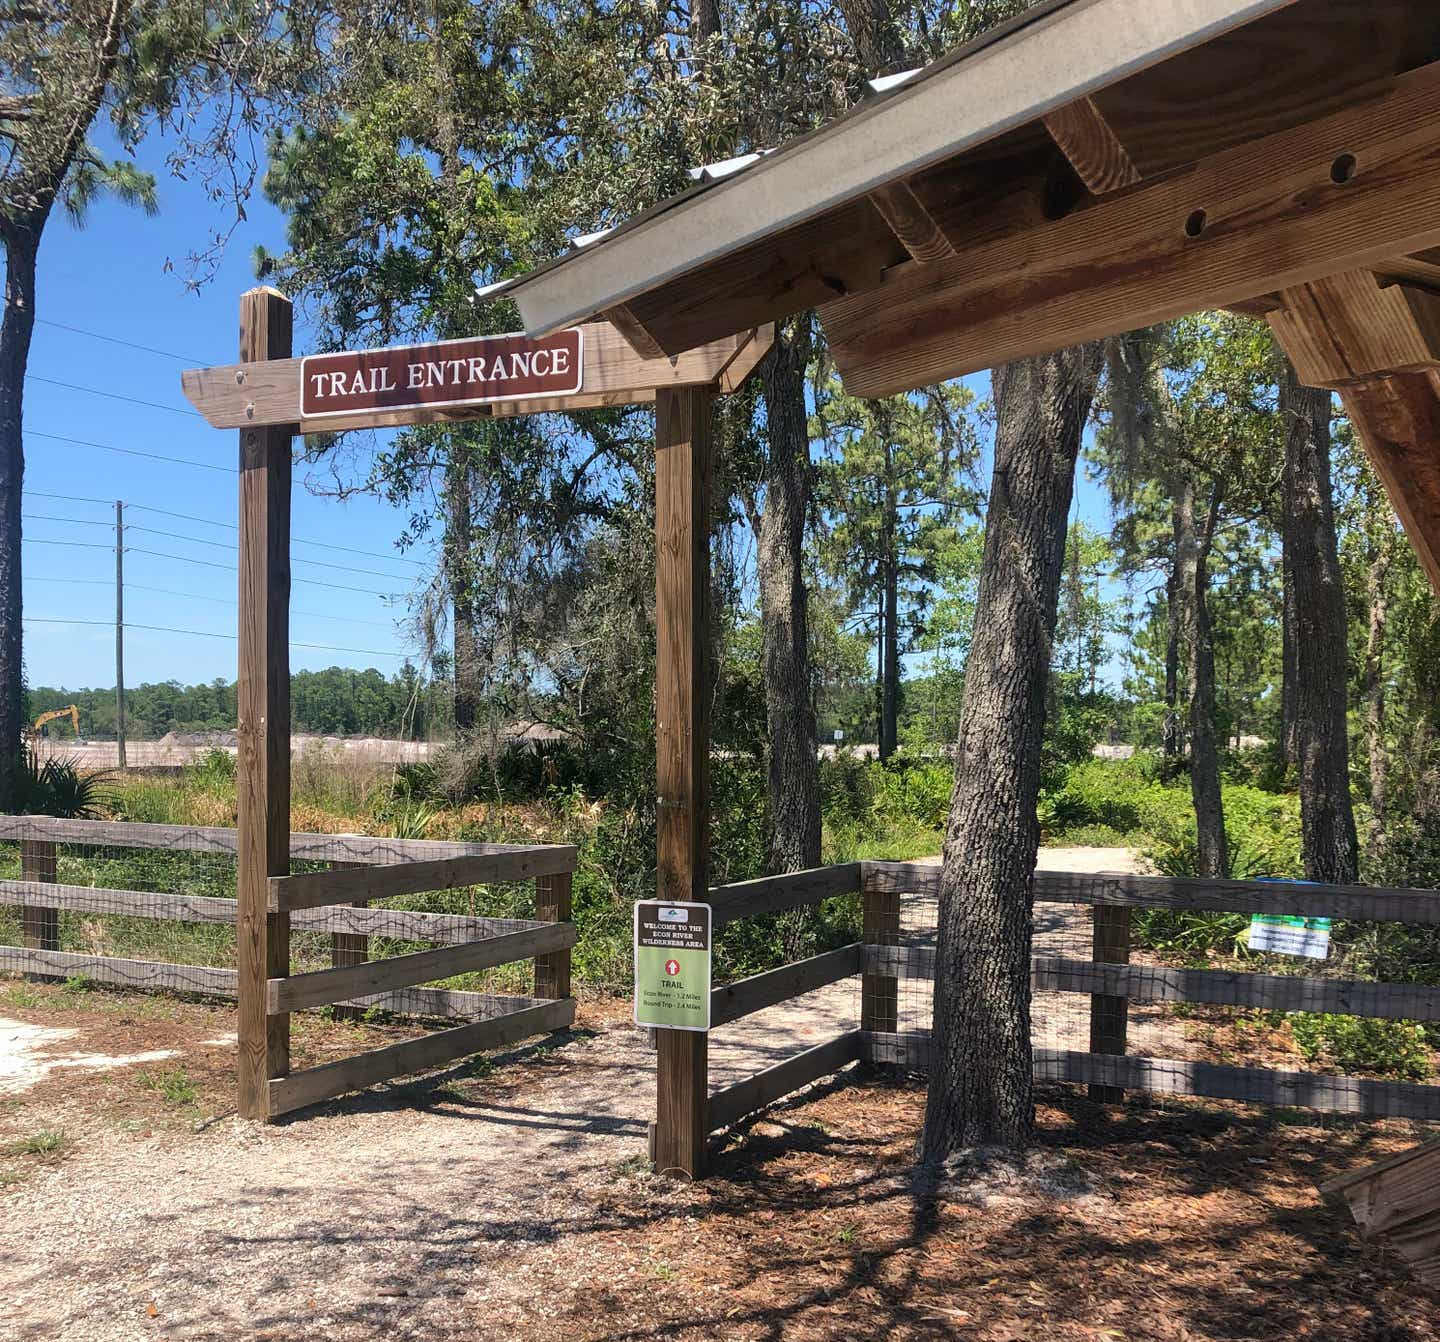 Trail entrance for the Econ River Wilderness Area